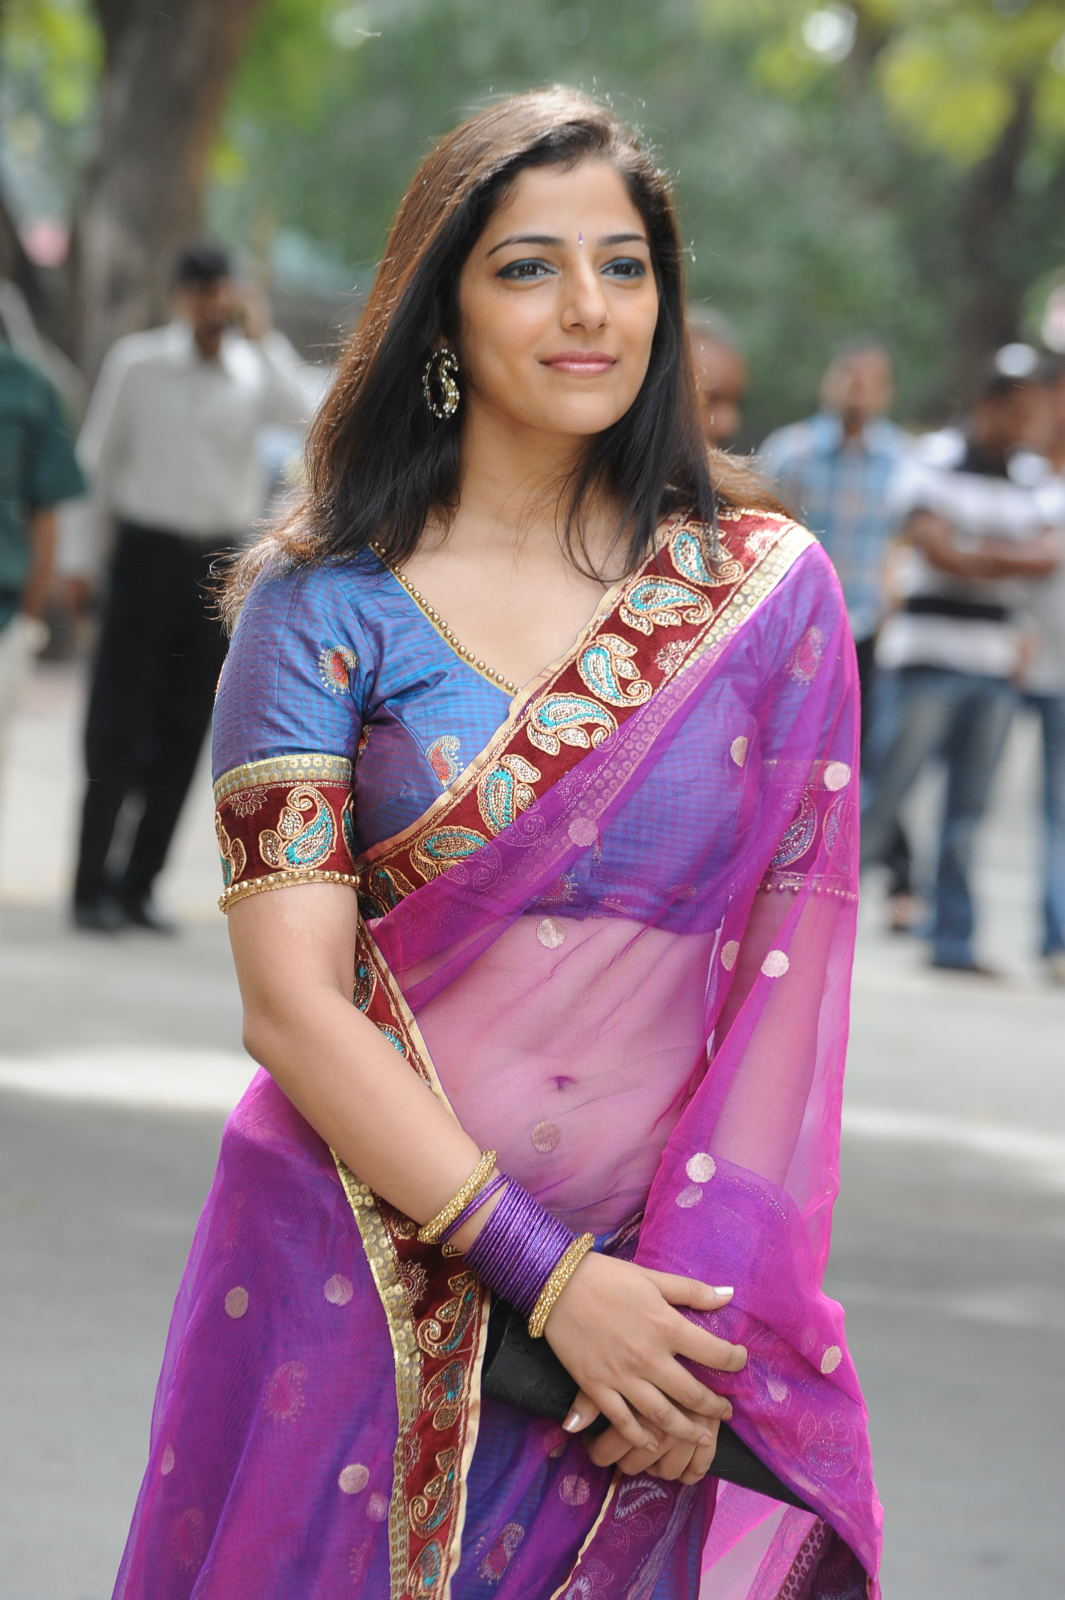 Cute nishanthi in a transparent saree